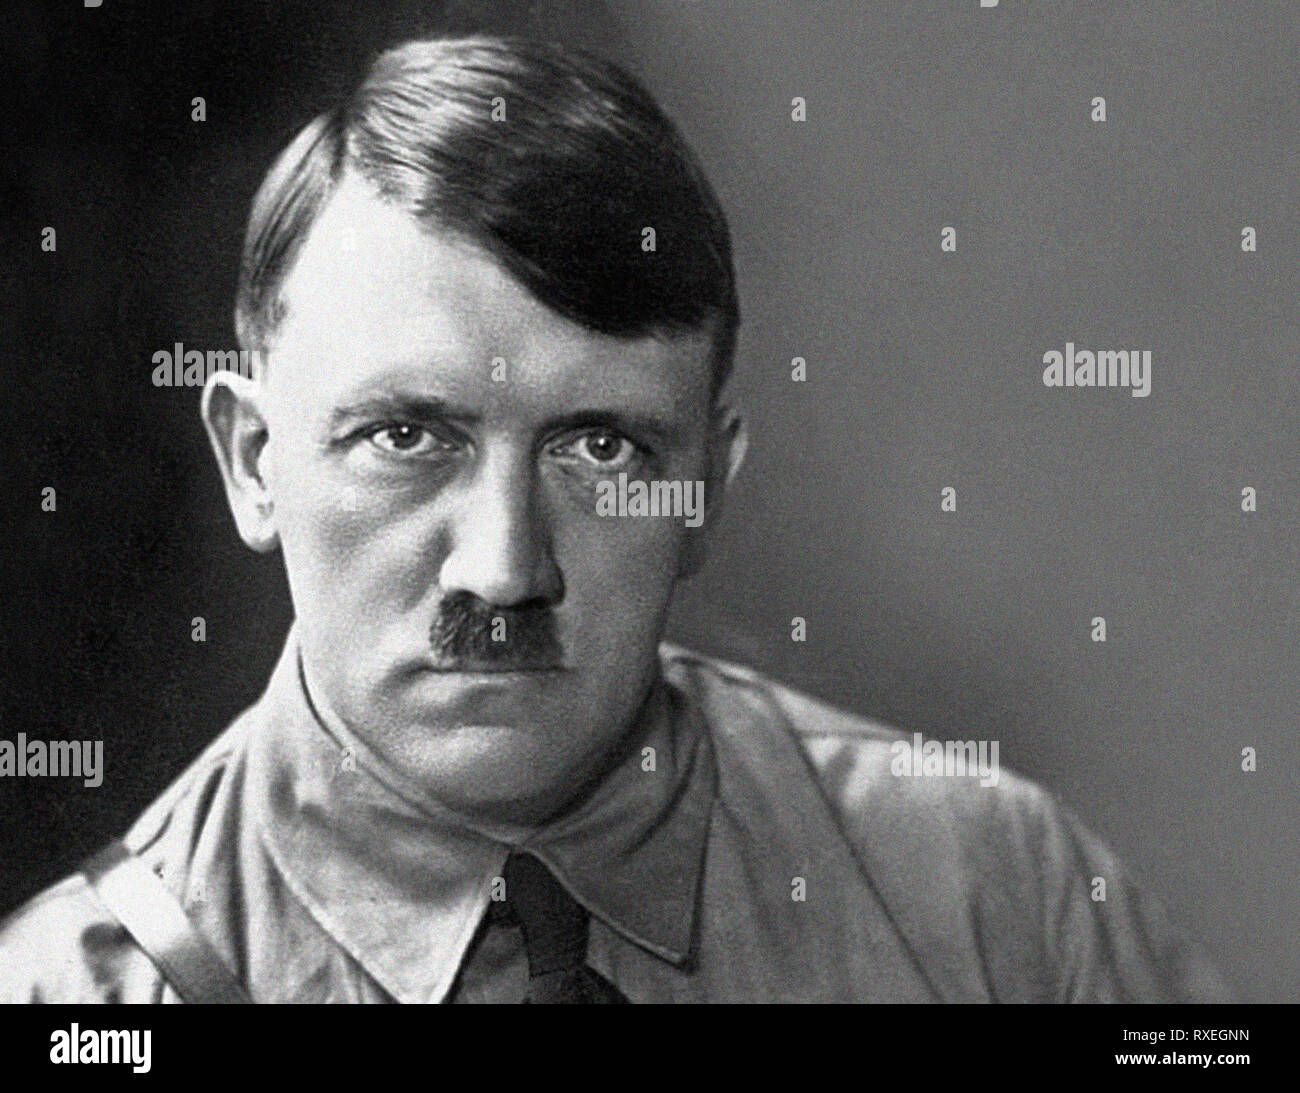 Portrait of Adolf HITLER German wartime leader. New scan from the archives of Press Portrait Service - formerly Press Portrait Bureau. - Stock Image